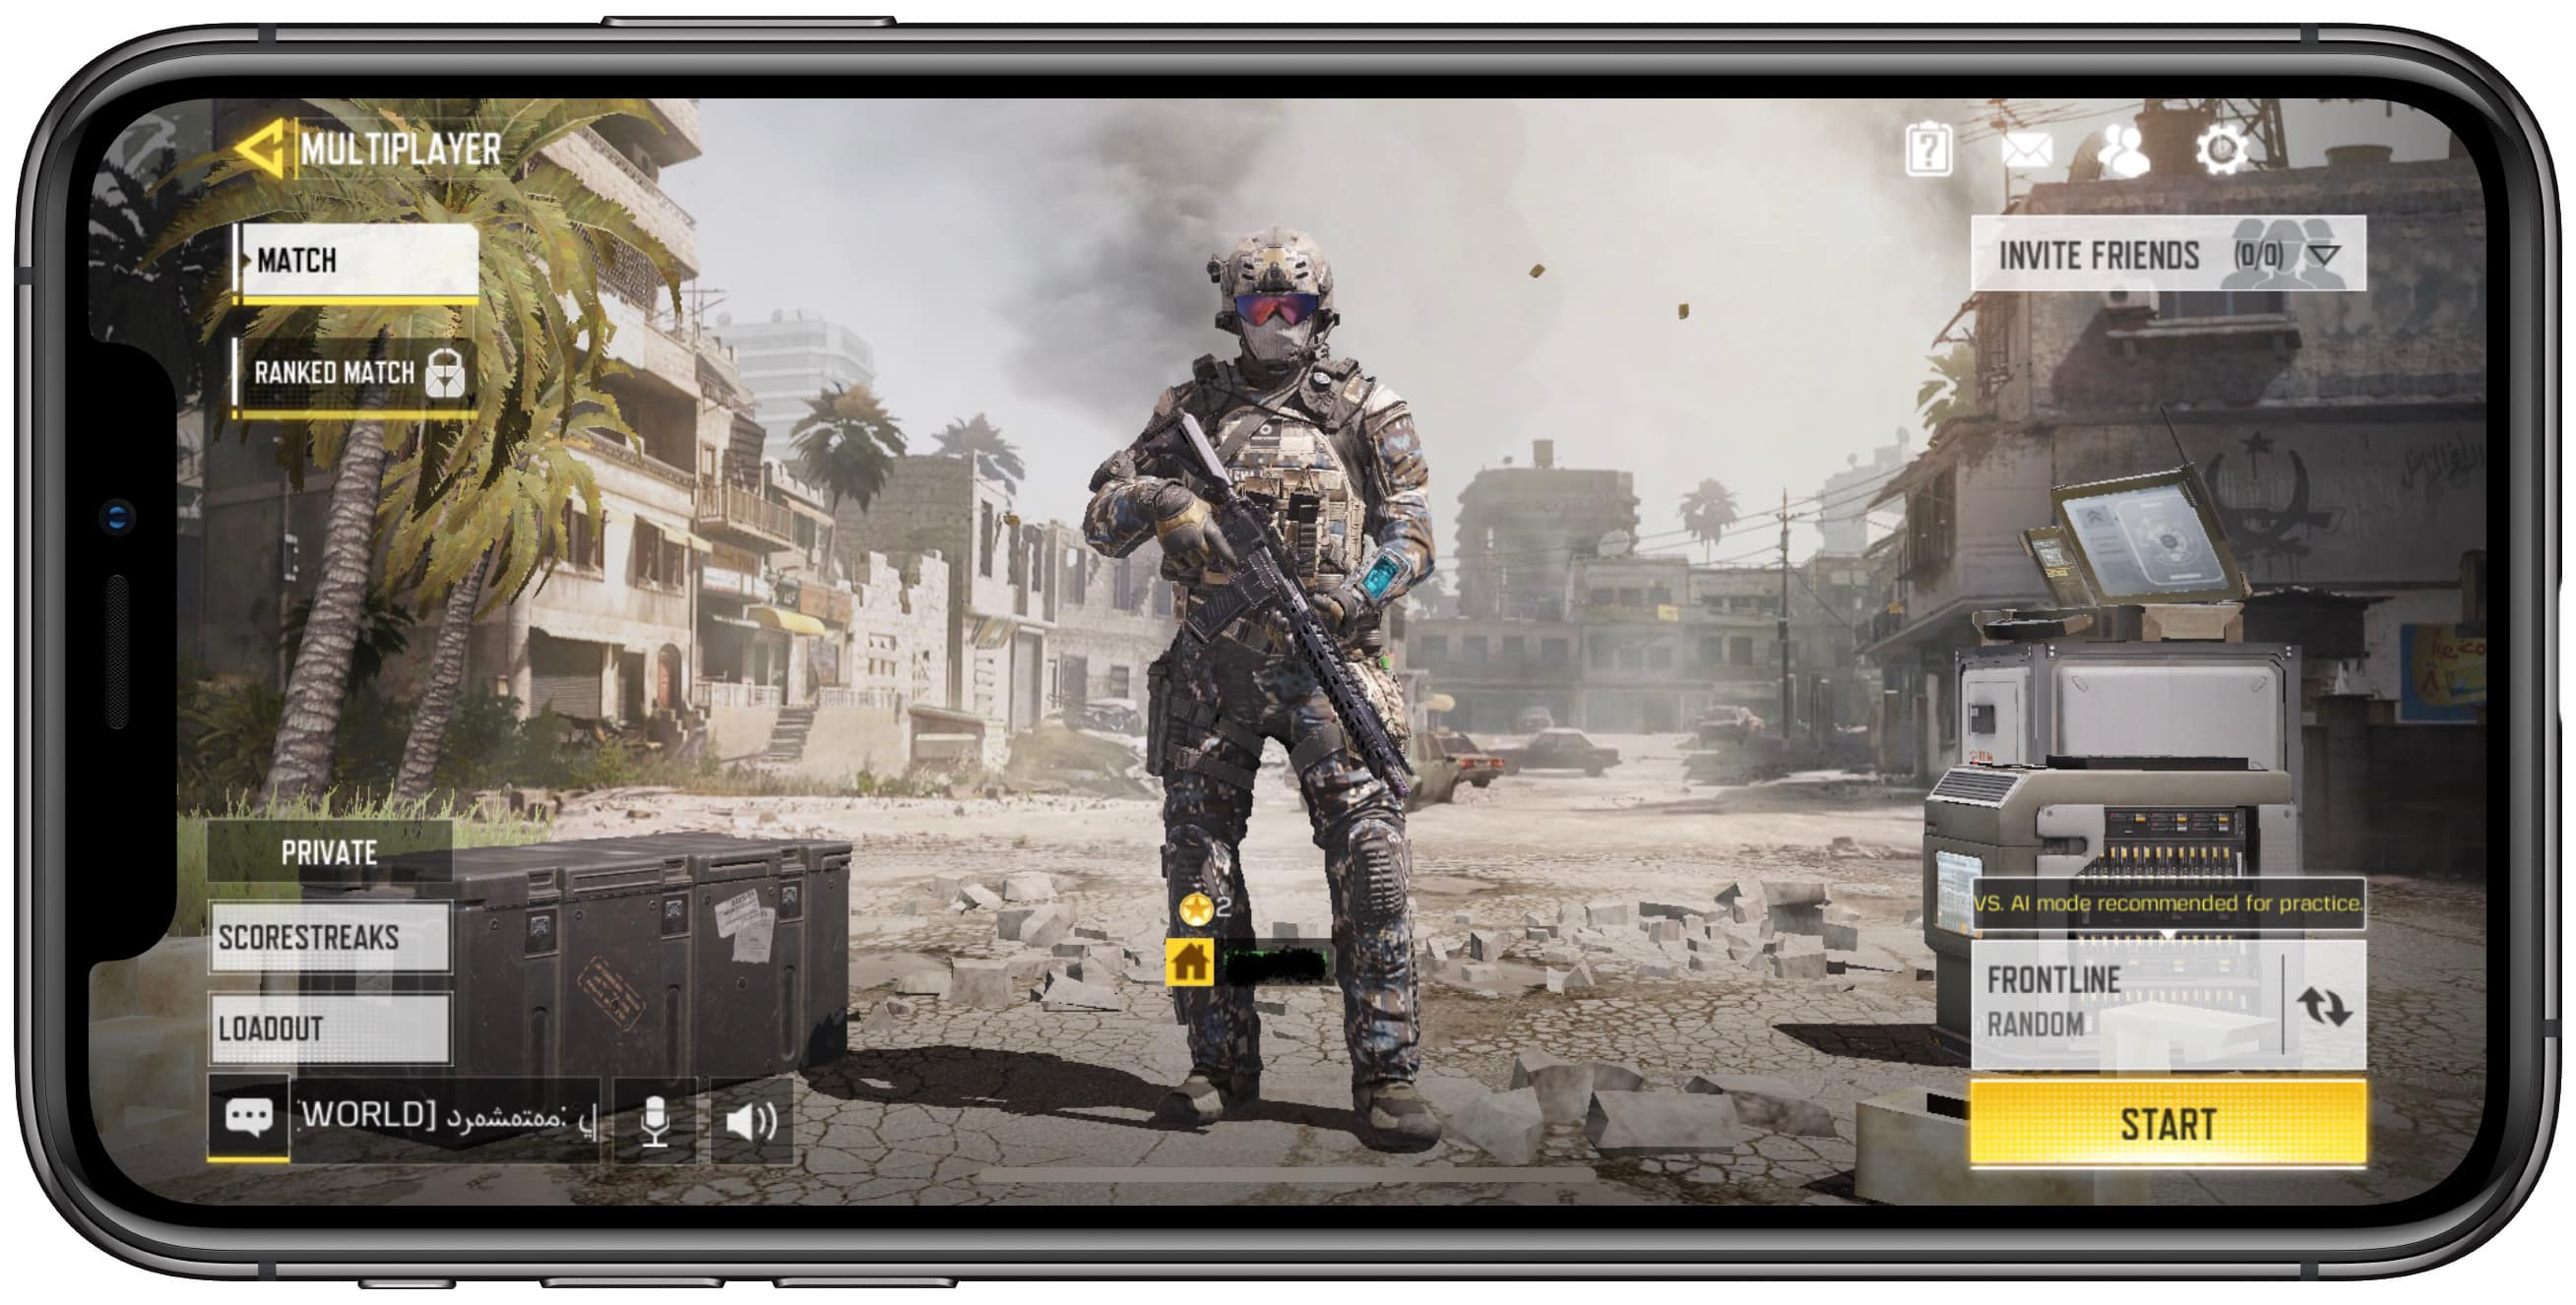 Call of Duty: Mobile racks up amazing 100m downloads in first week